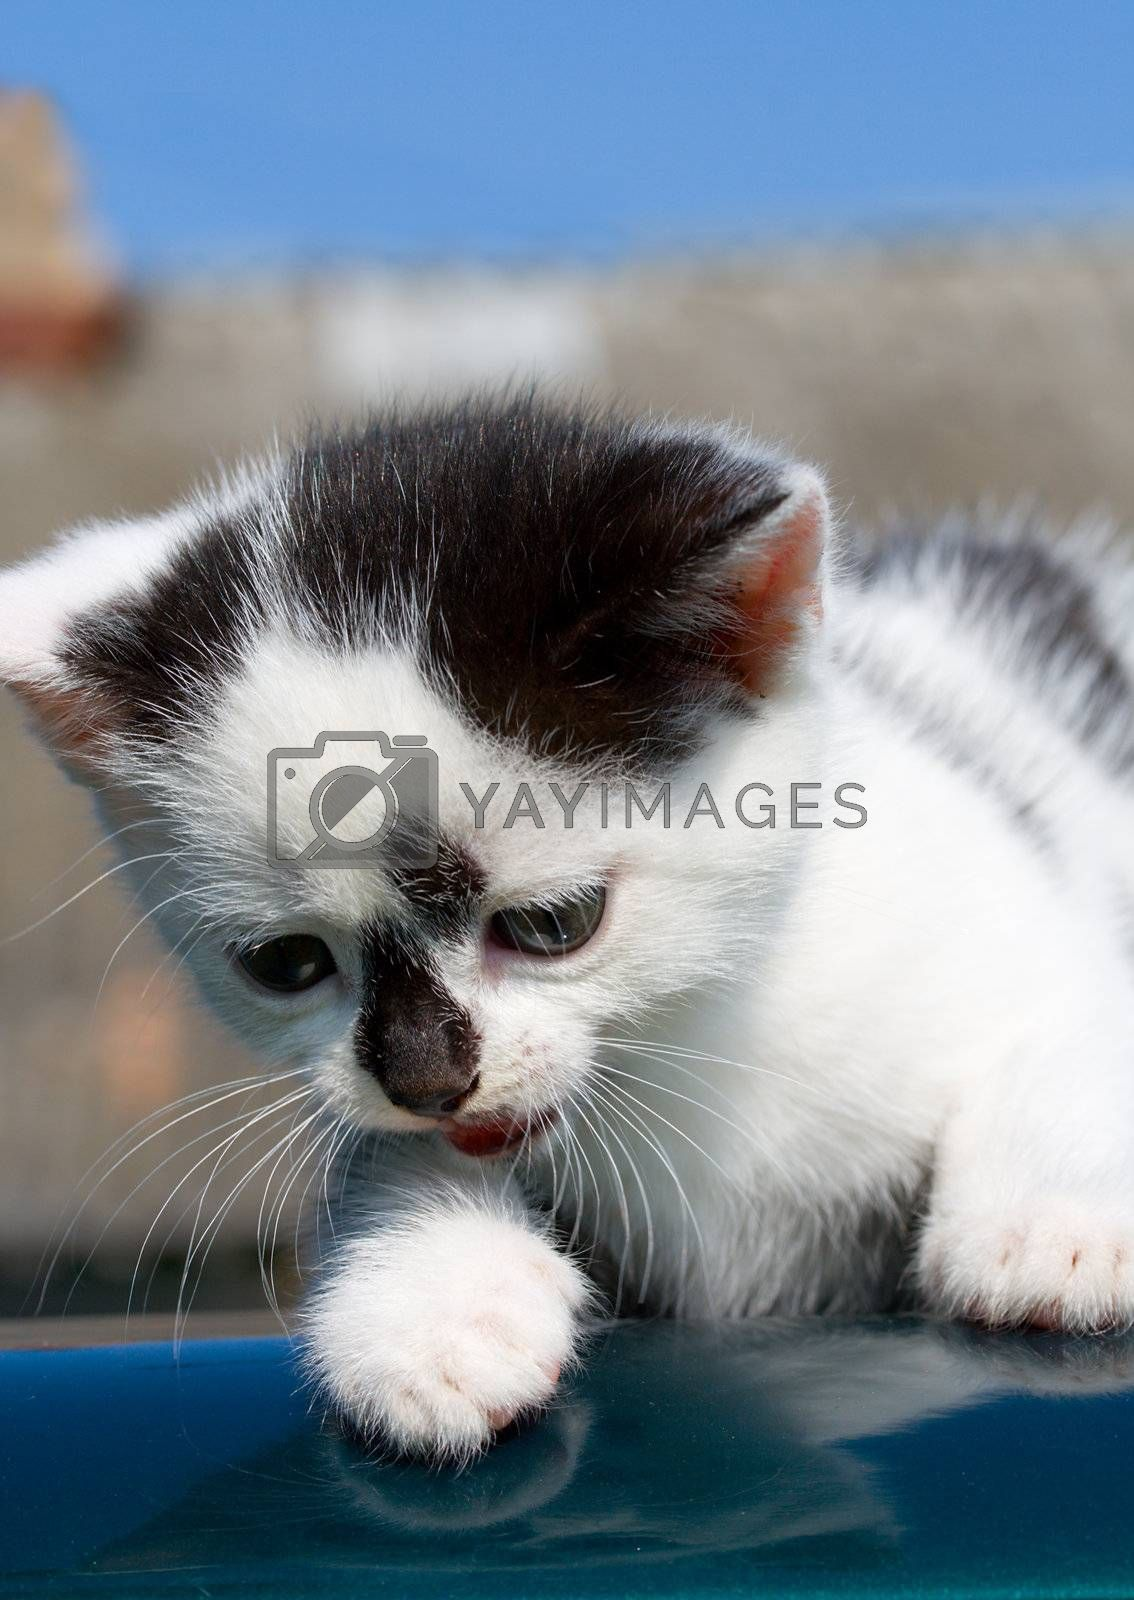 kitten lying on car by Alekcey